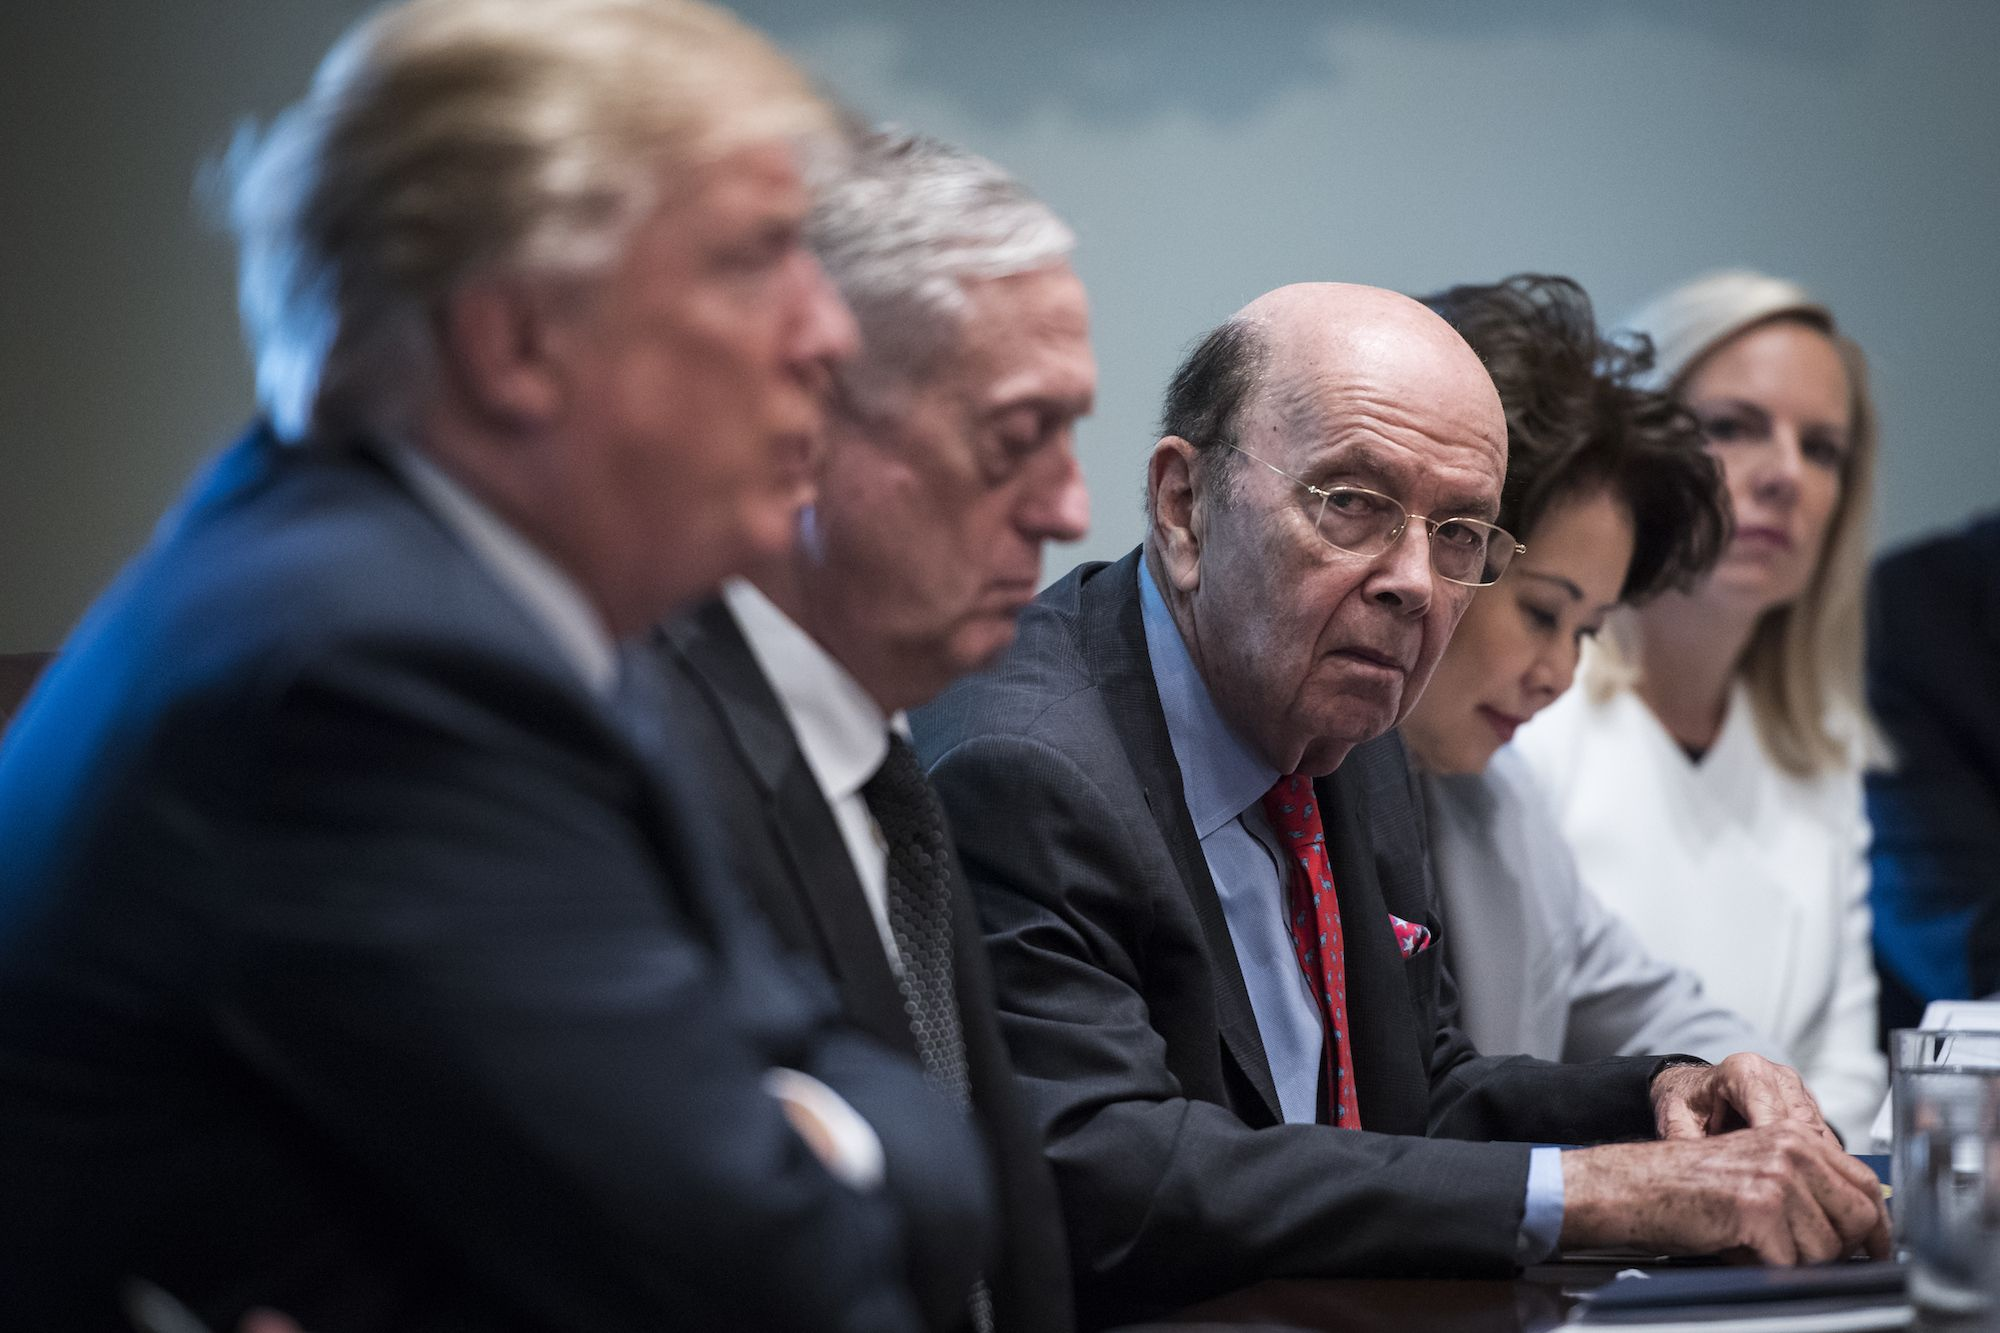 Wilbur Ross doesn't get enough attention as the most shameless operator in Donald Trump's orbit.